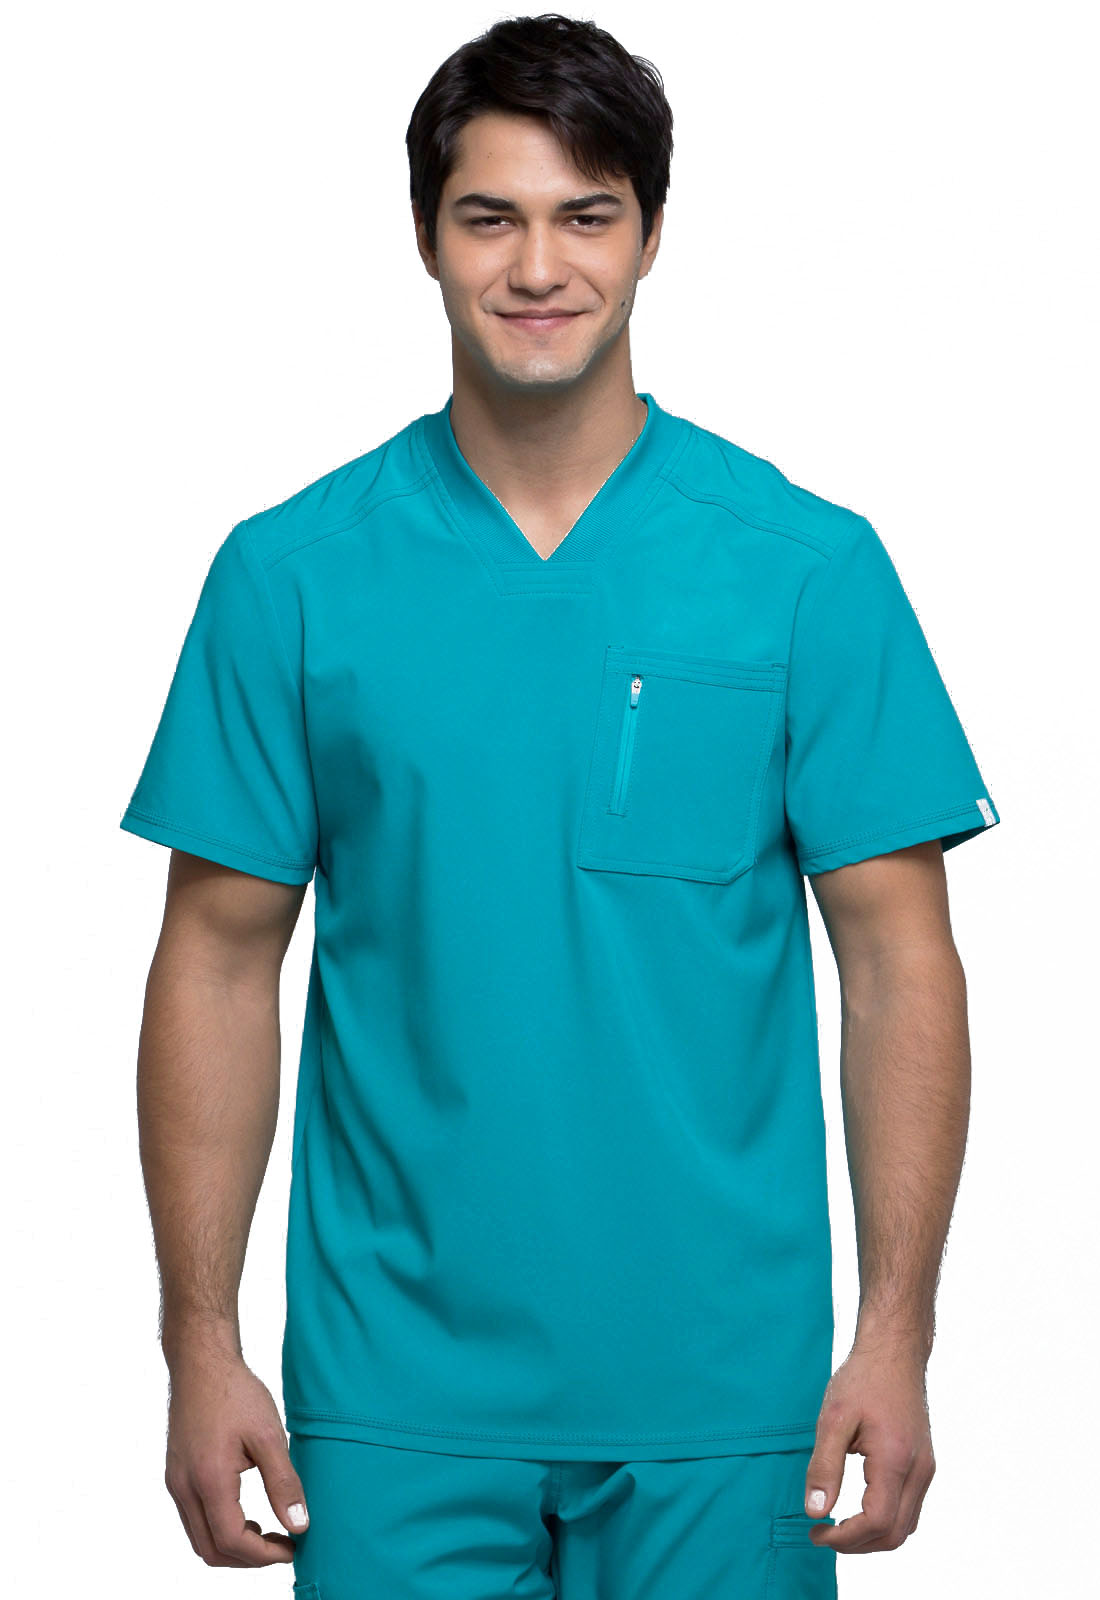 uniforms from hour v neck for brush s cherokee product bhhr men infinity by top